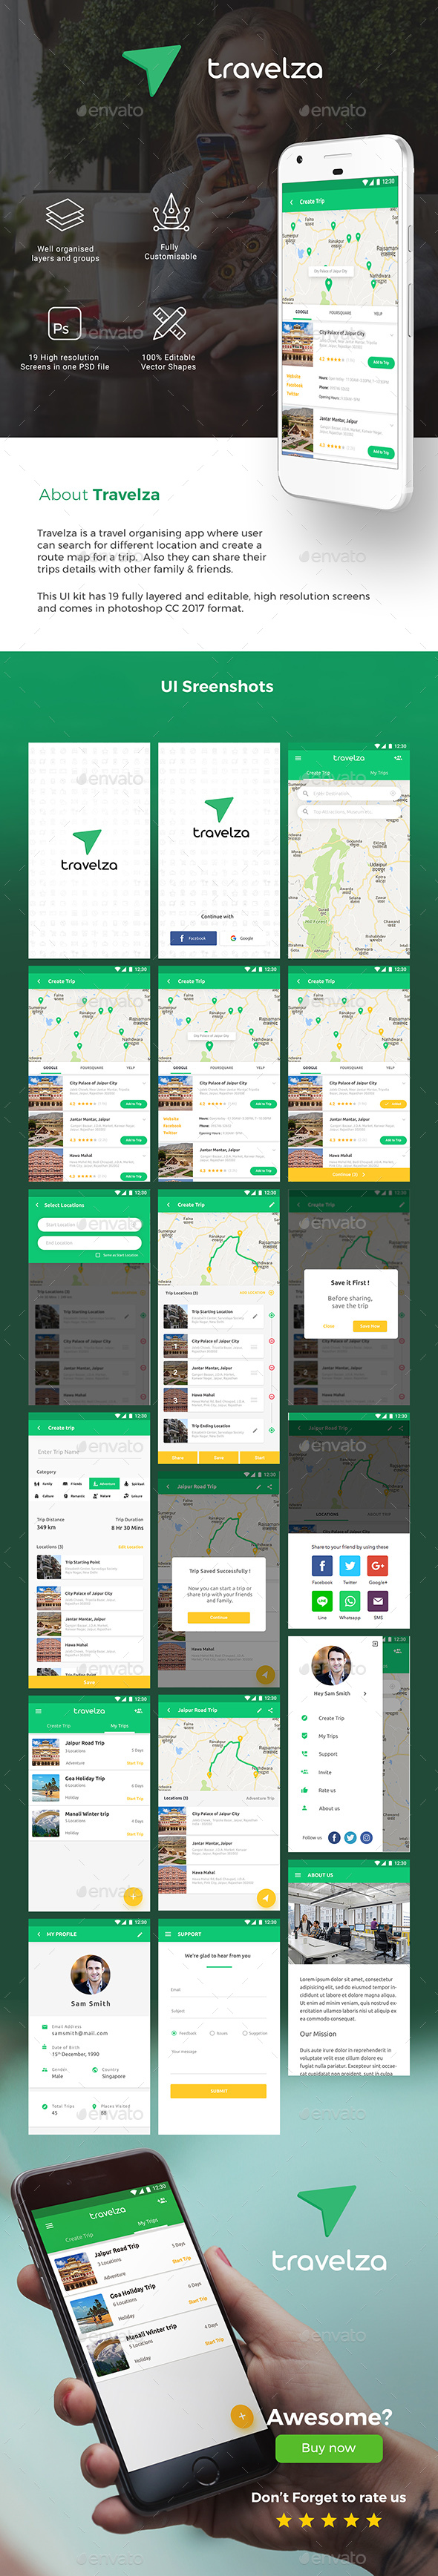 Travel Organiser App UI Kit For Android & iOs | Travelza - User Interfaces Web Elements